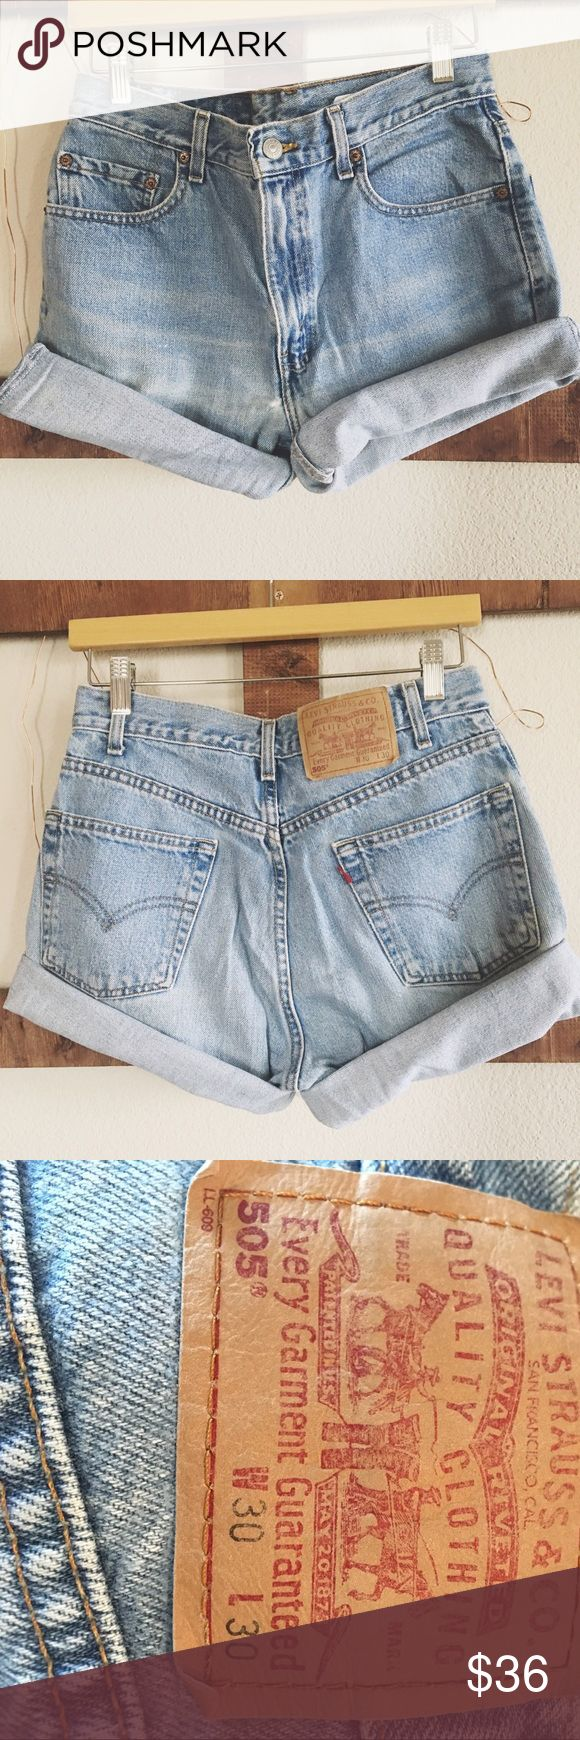 "Vintage Levi 505 jean short🌻 Vintage Levi 505 Jean Short🌻 waist 30"", 11"" length, size 8 but fits like a 6, would most likely fit a 4 as well, handcutt not darted so you can adjust the cuff✨ Levi's Shorts Jean Shorts"